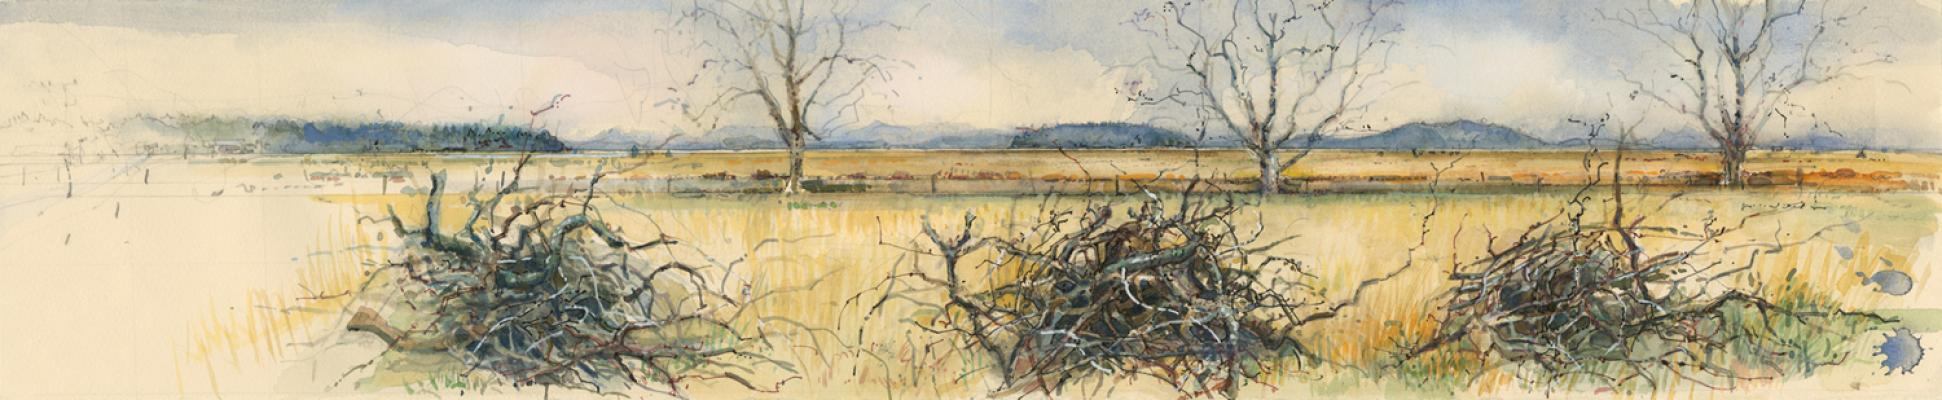 "Elizabeth Ockwell, ""Bayview- Edison Rd."", 2010, mixed media on paper, 6.25 x 30"""